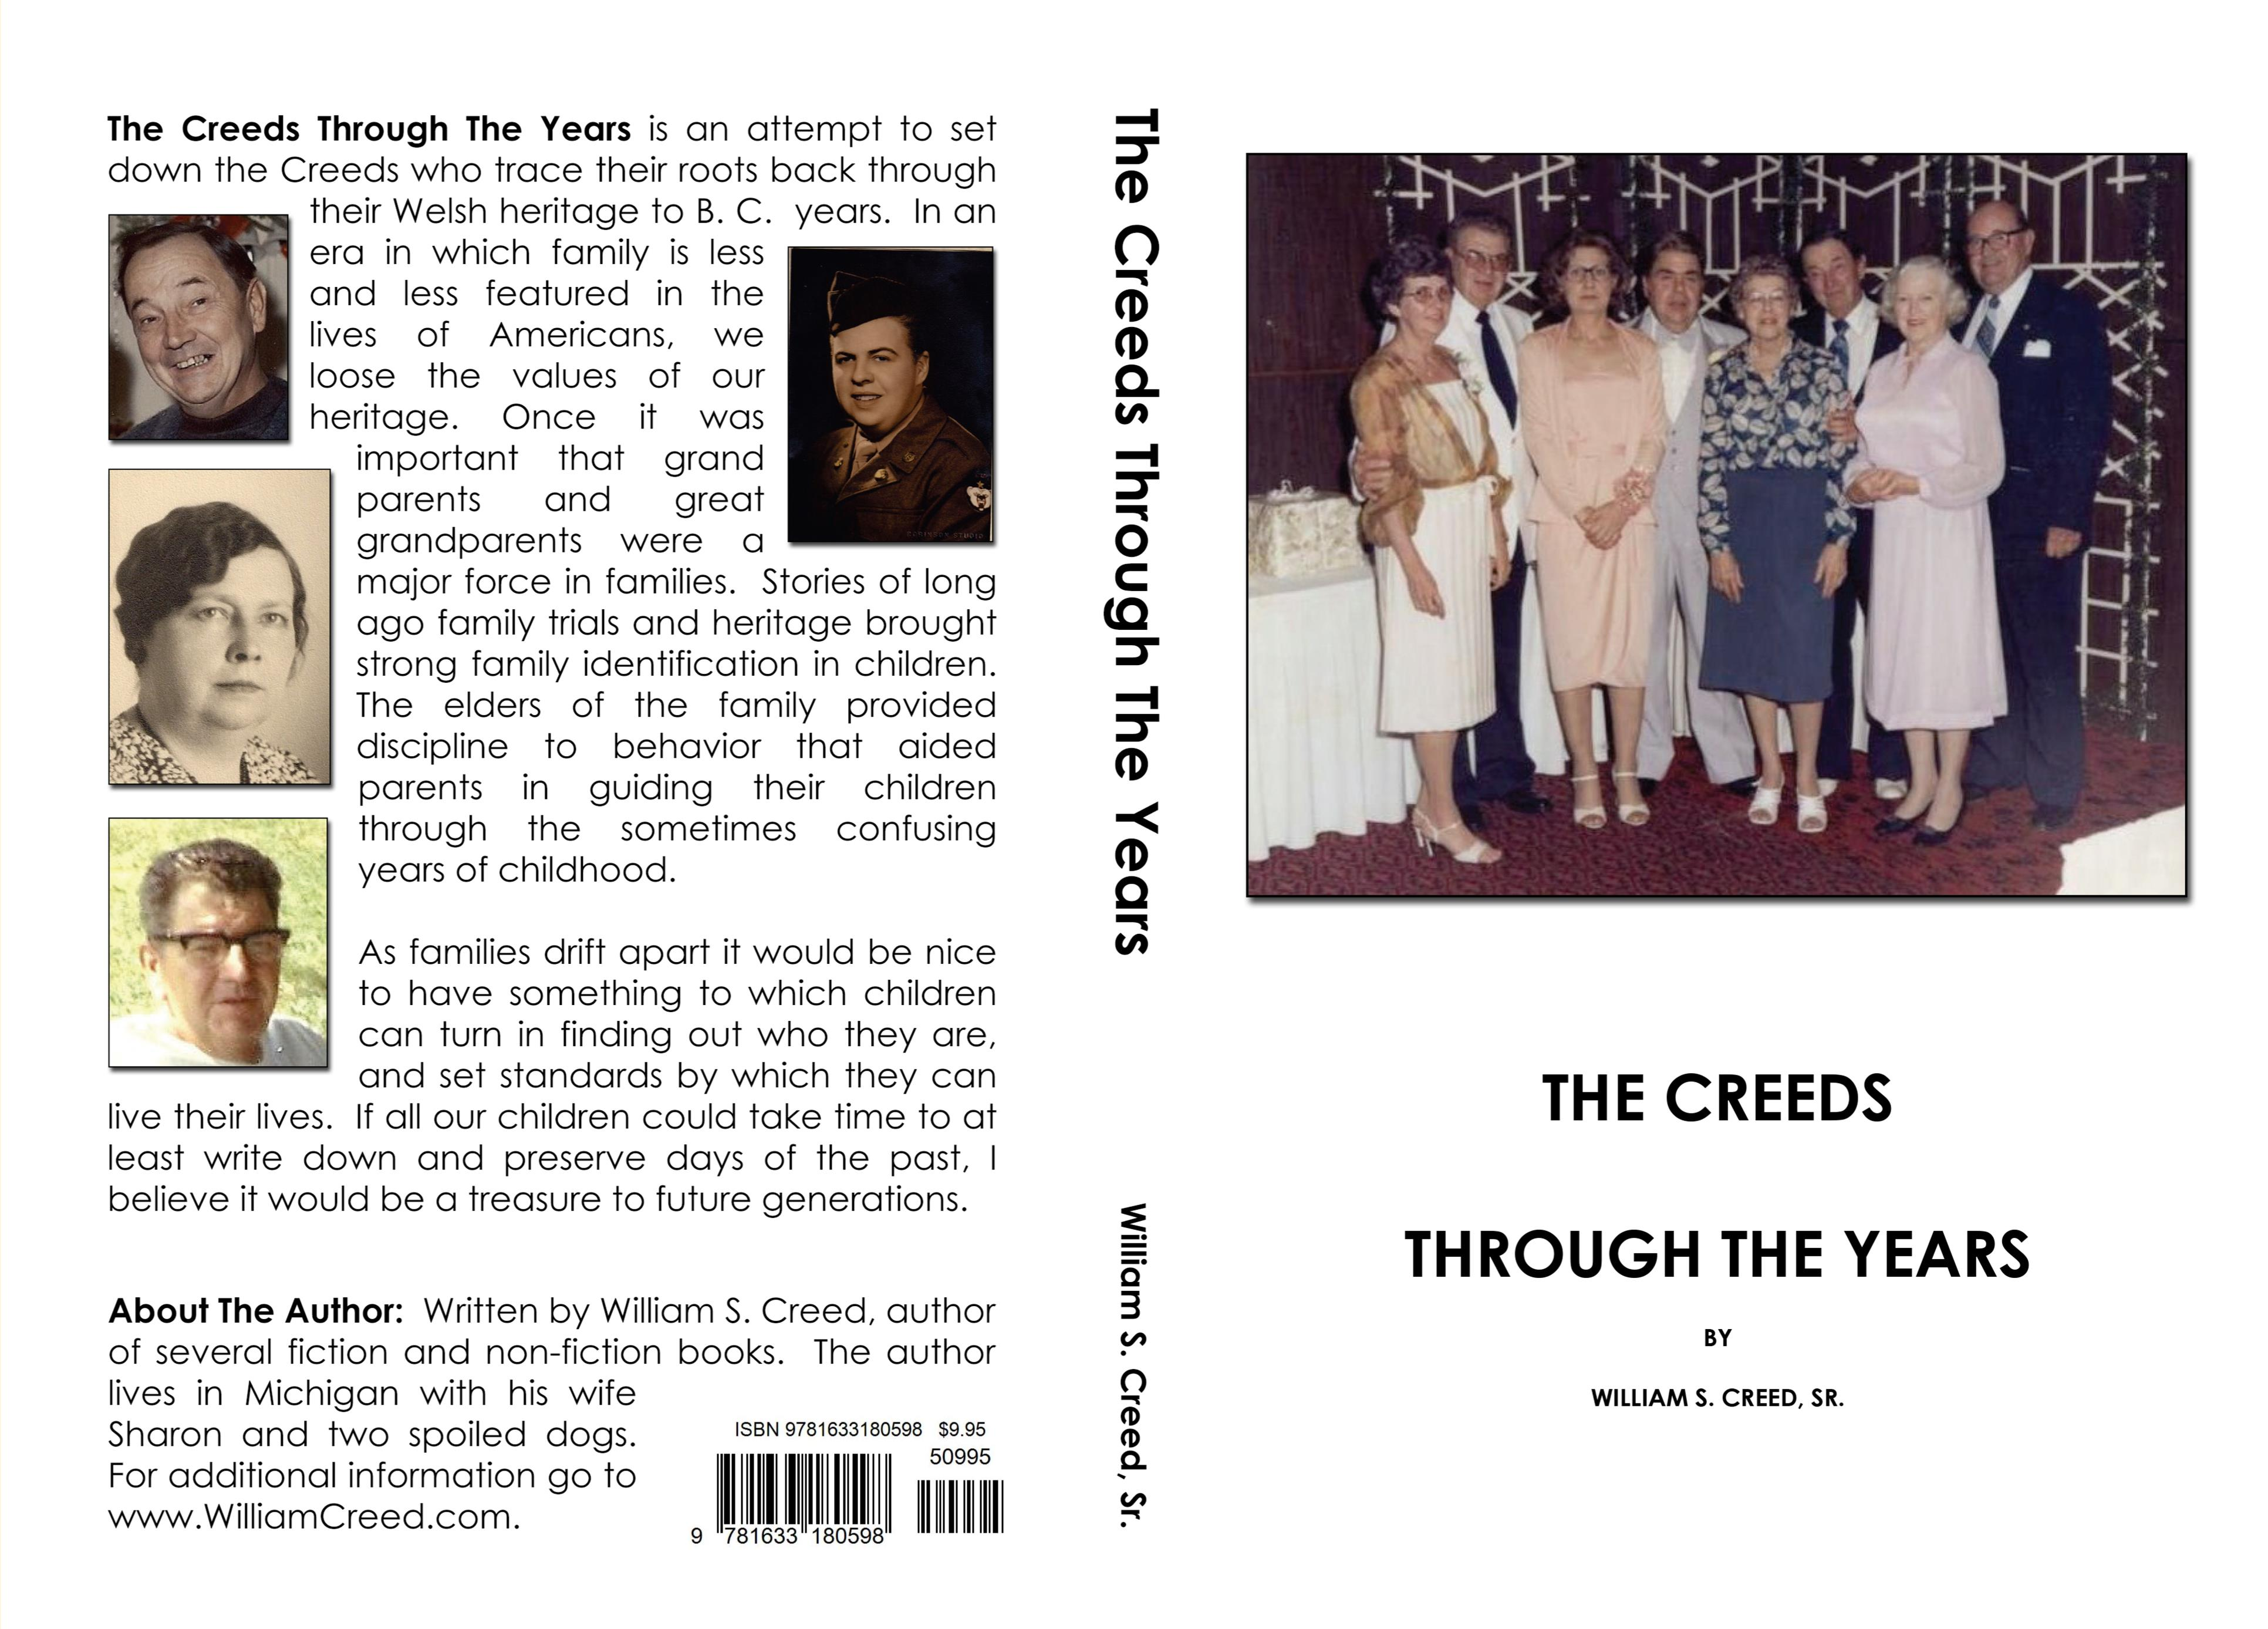 The Creeds Through The Years cover image